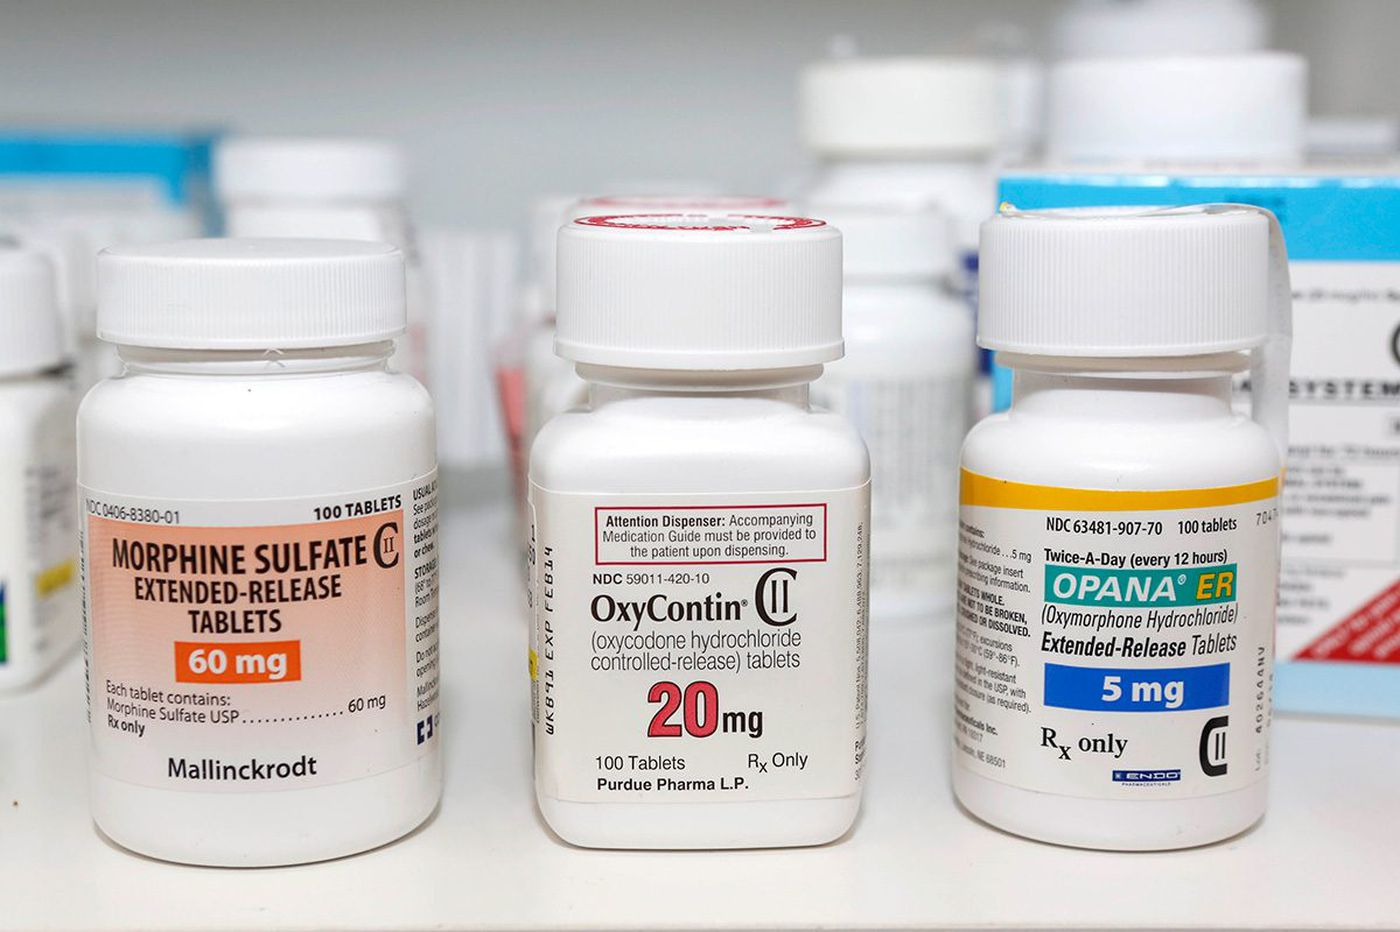 Commentary: Opioid approvals should protect public health